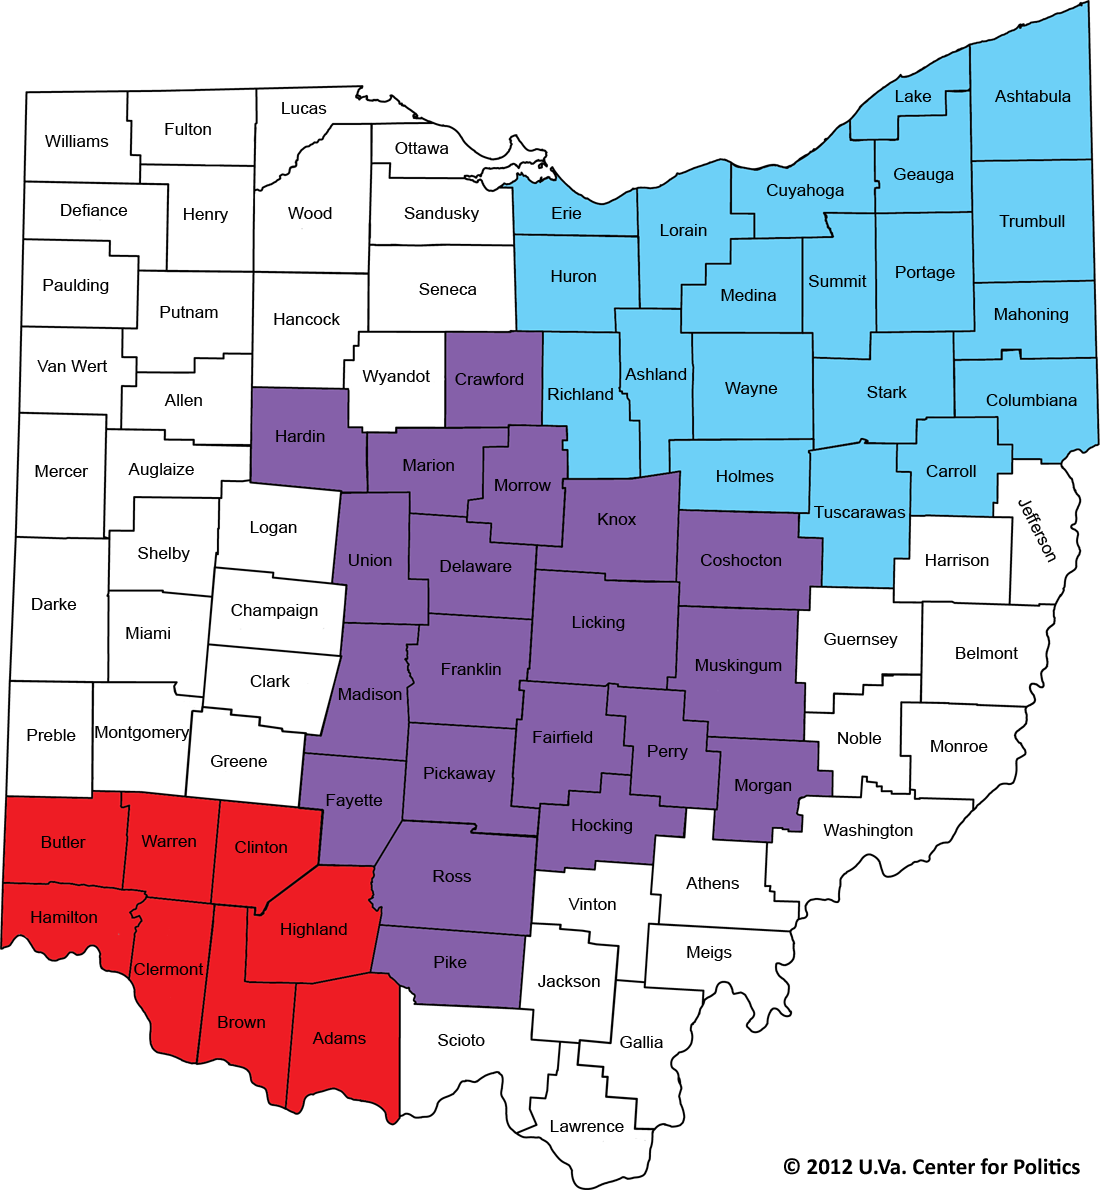 Ohio Zip Code Map Gallery